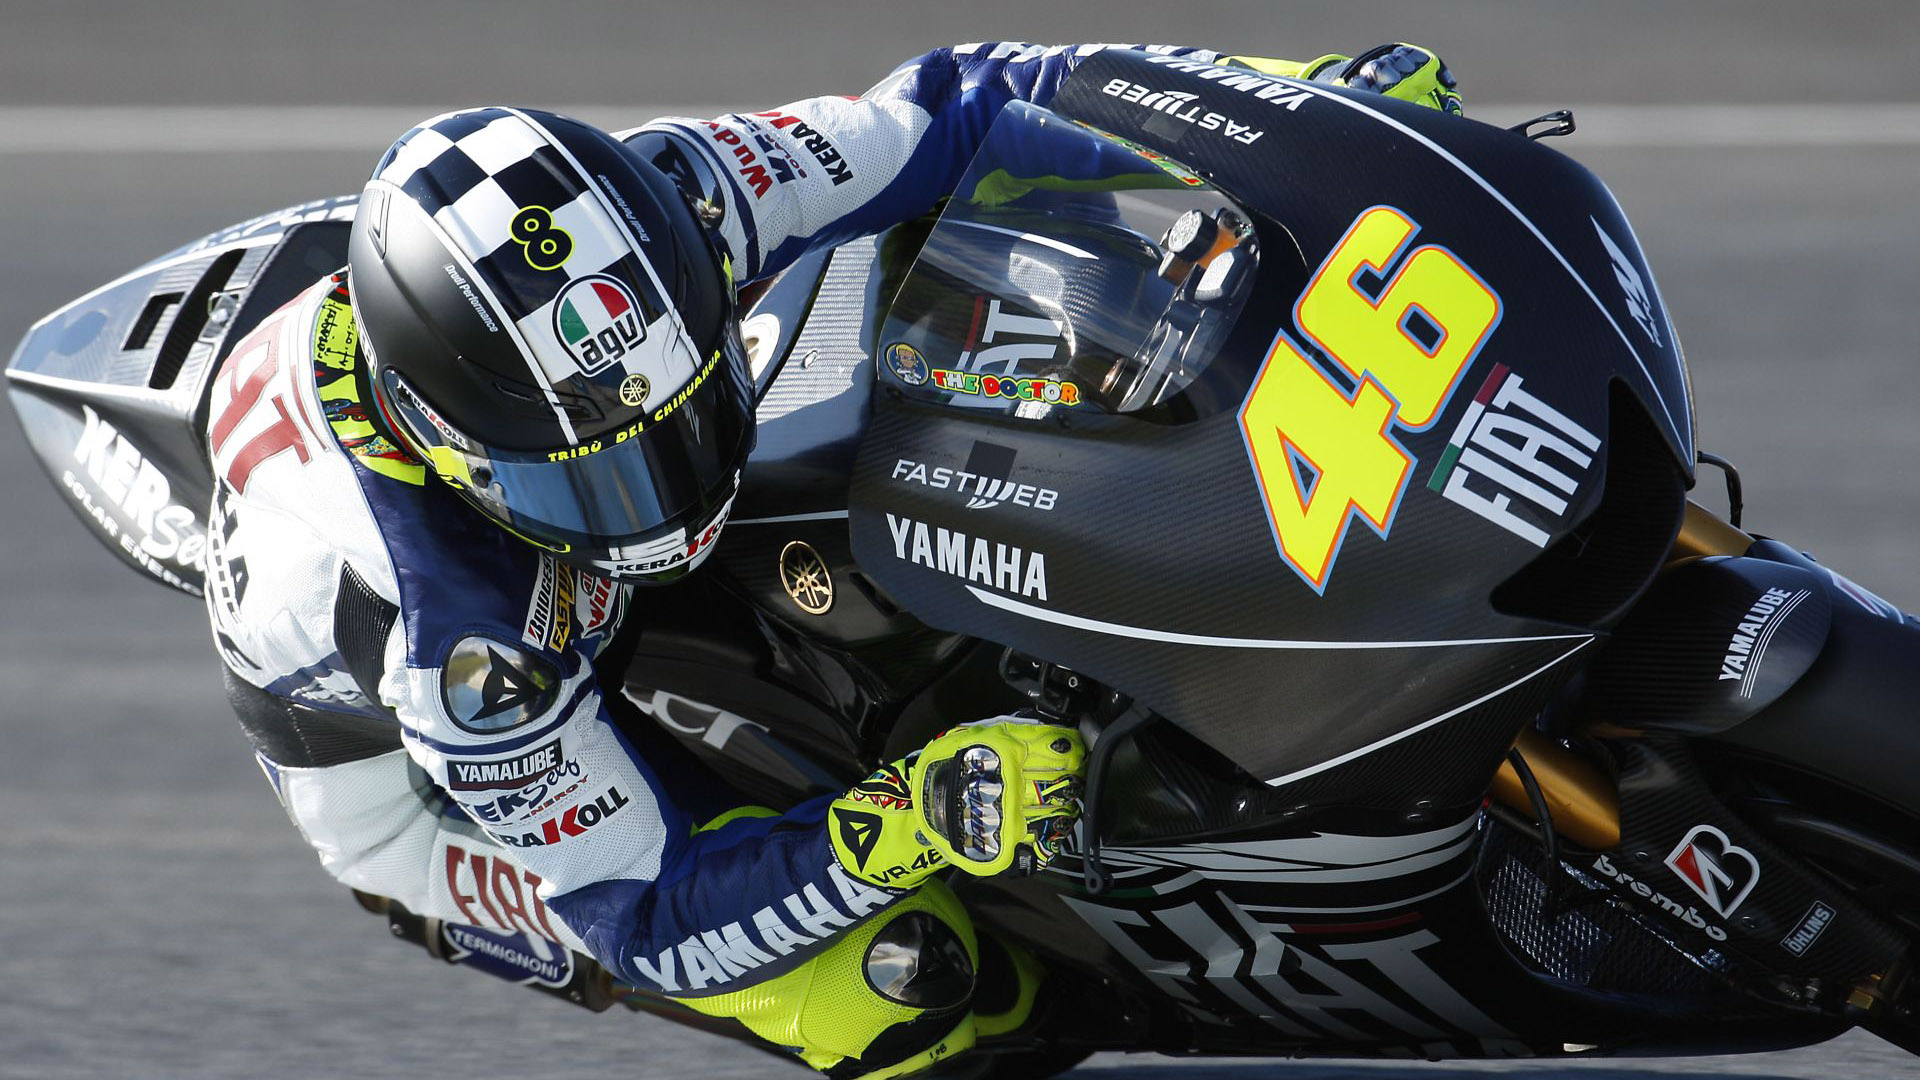 Motogp Valentino Rossi HD wallpaper